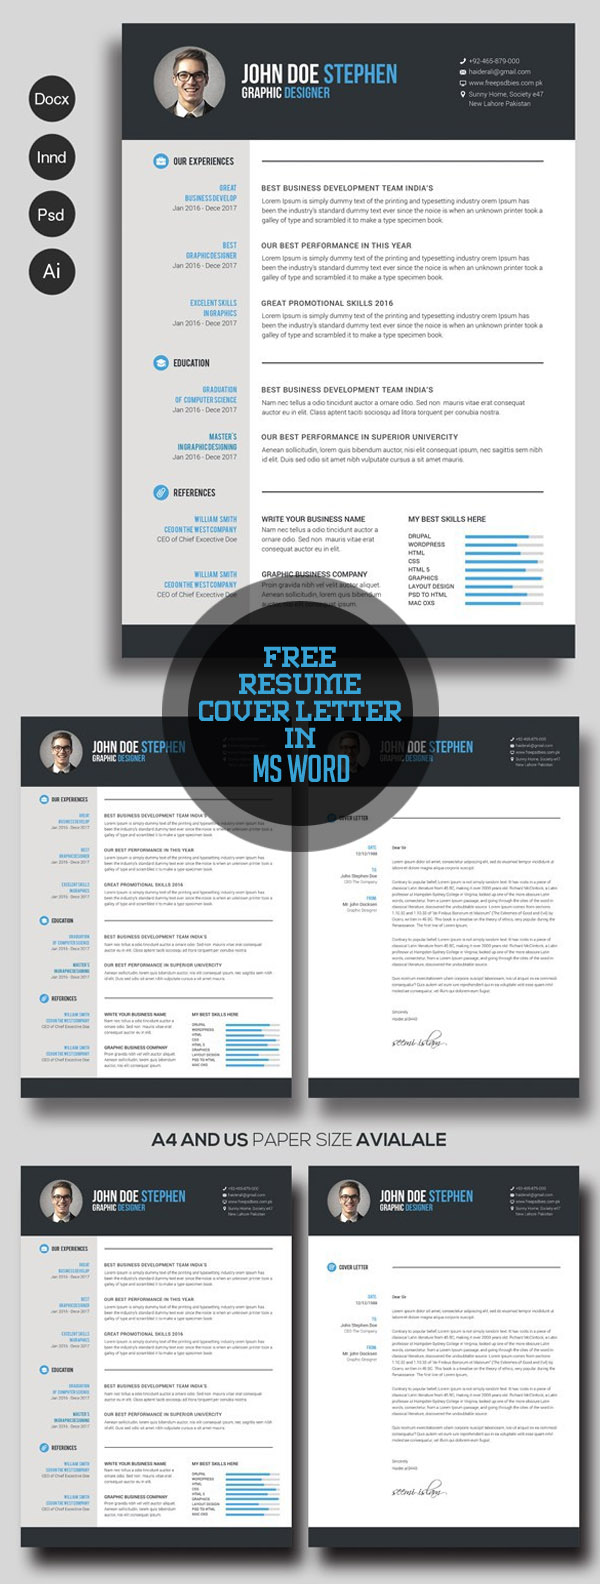 Free Resume & Cover Letter in Ms Word